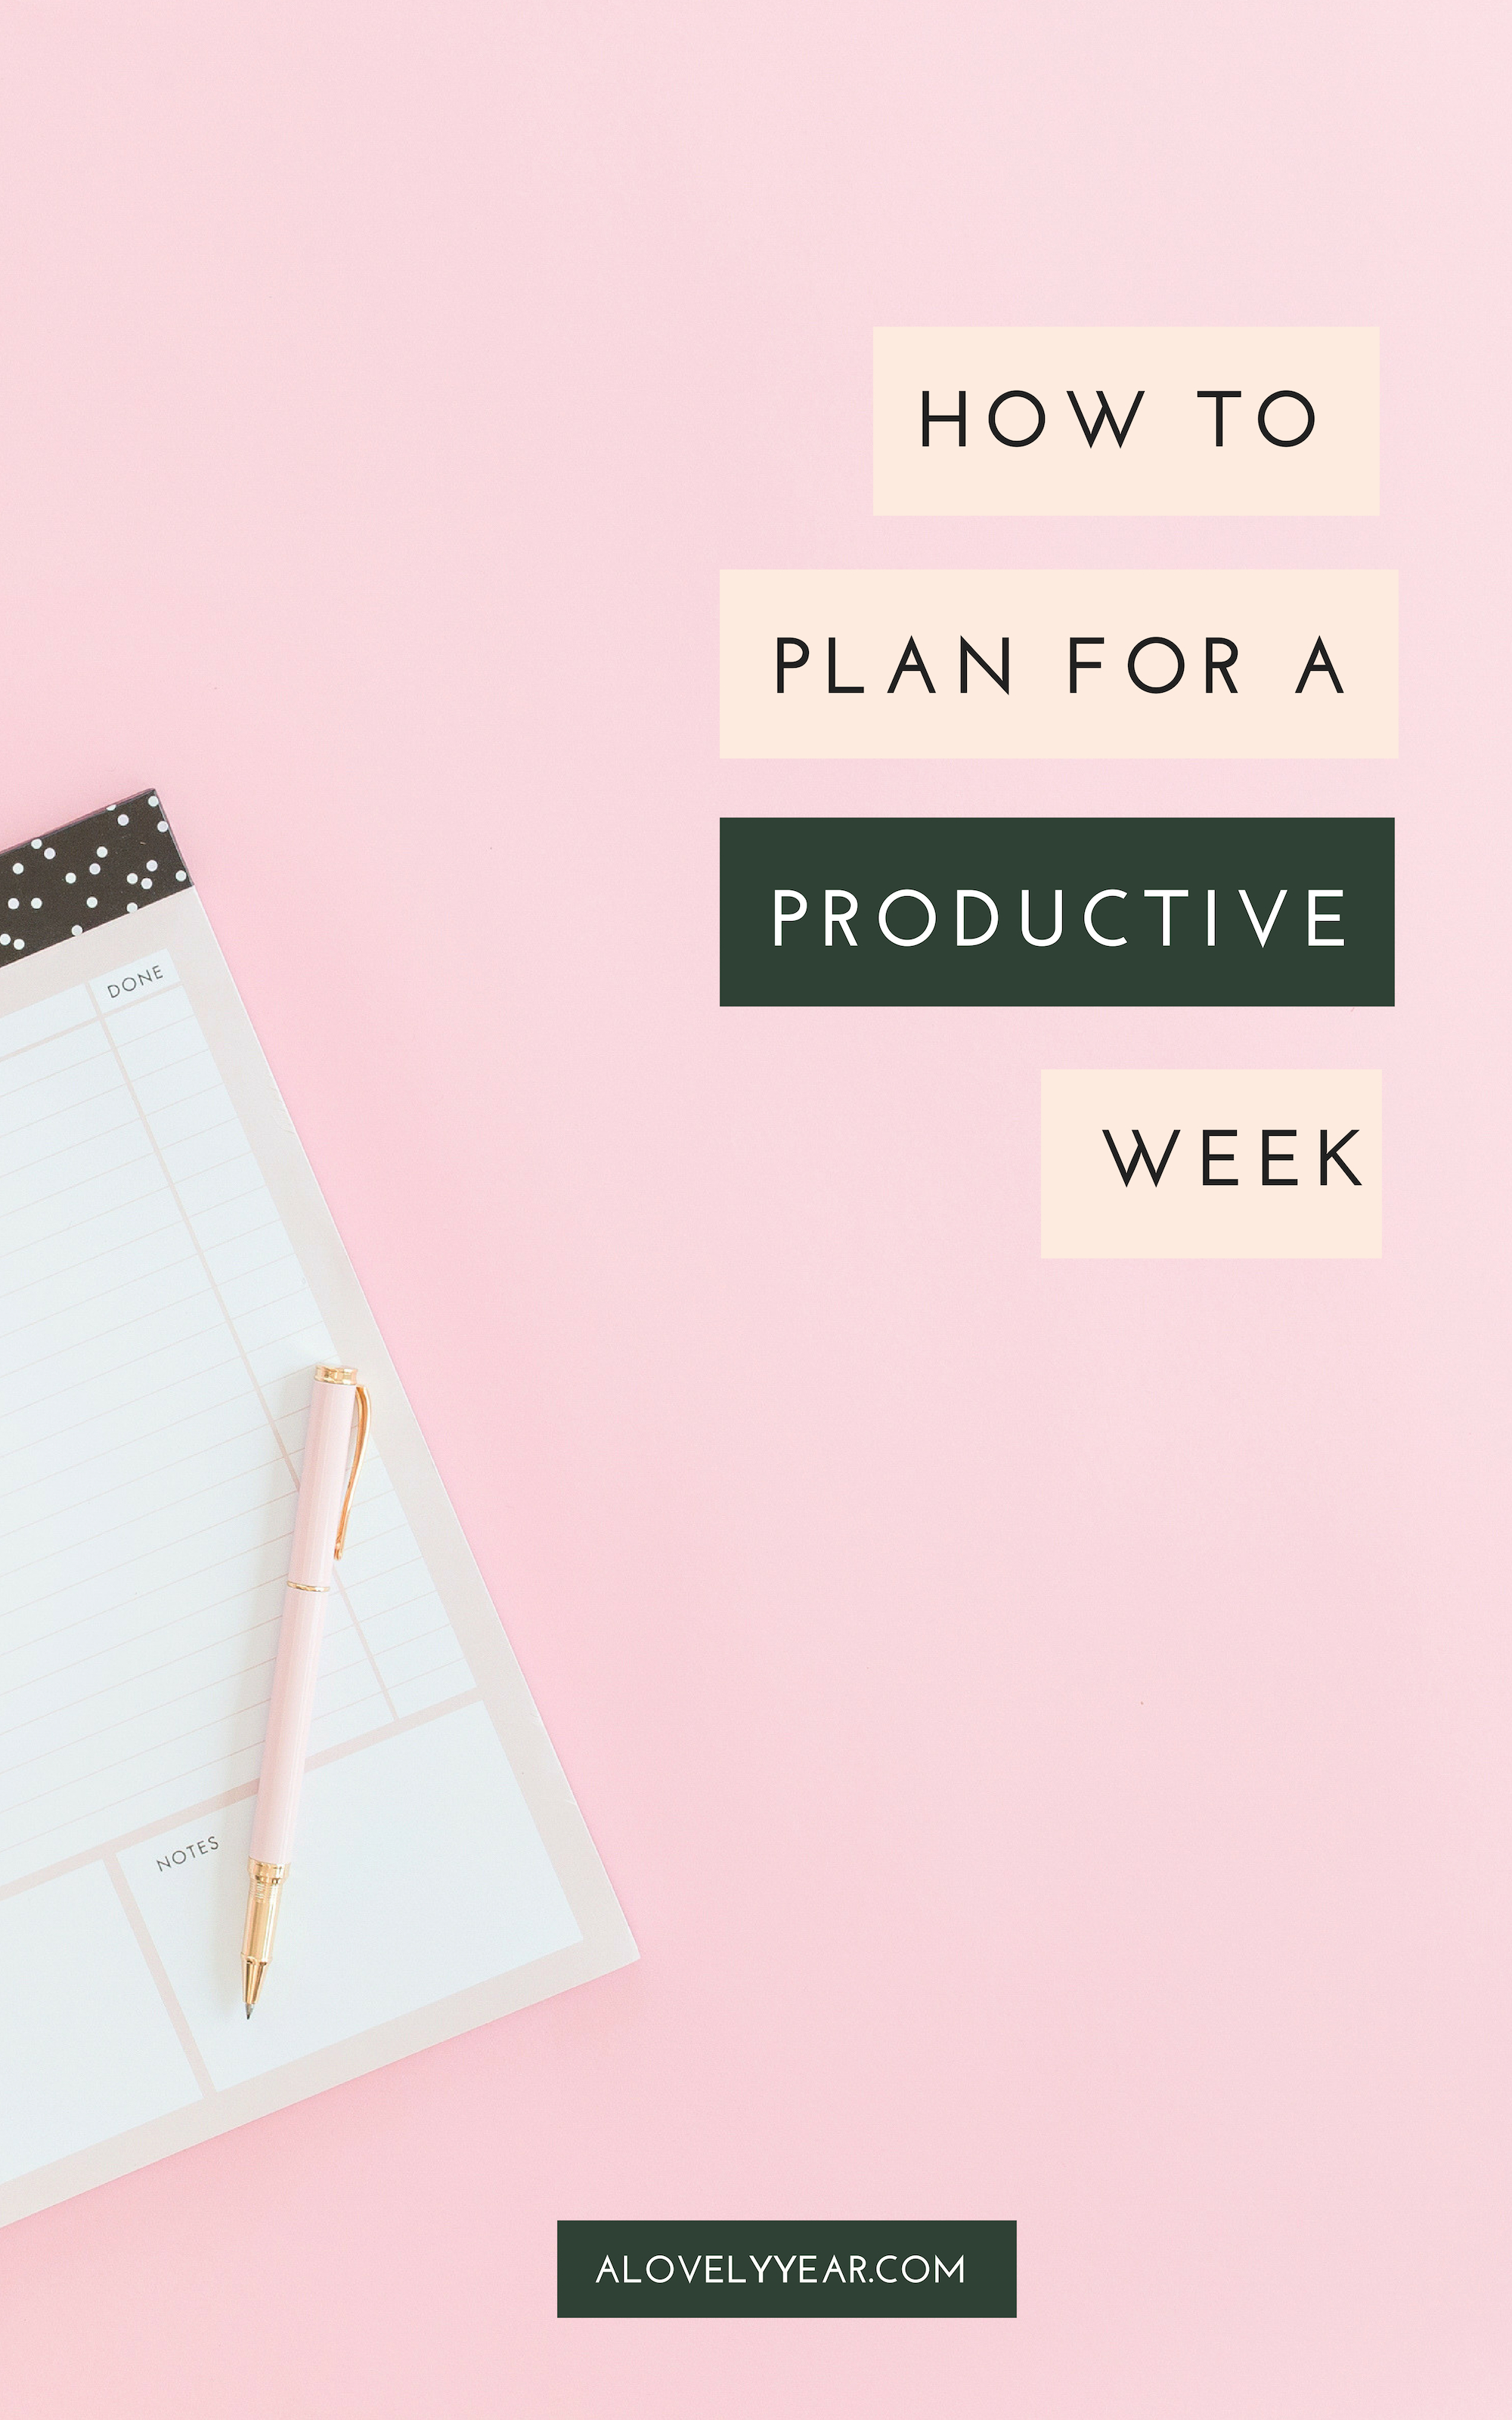 How to plan for a productive week